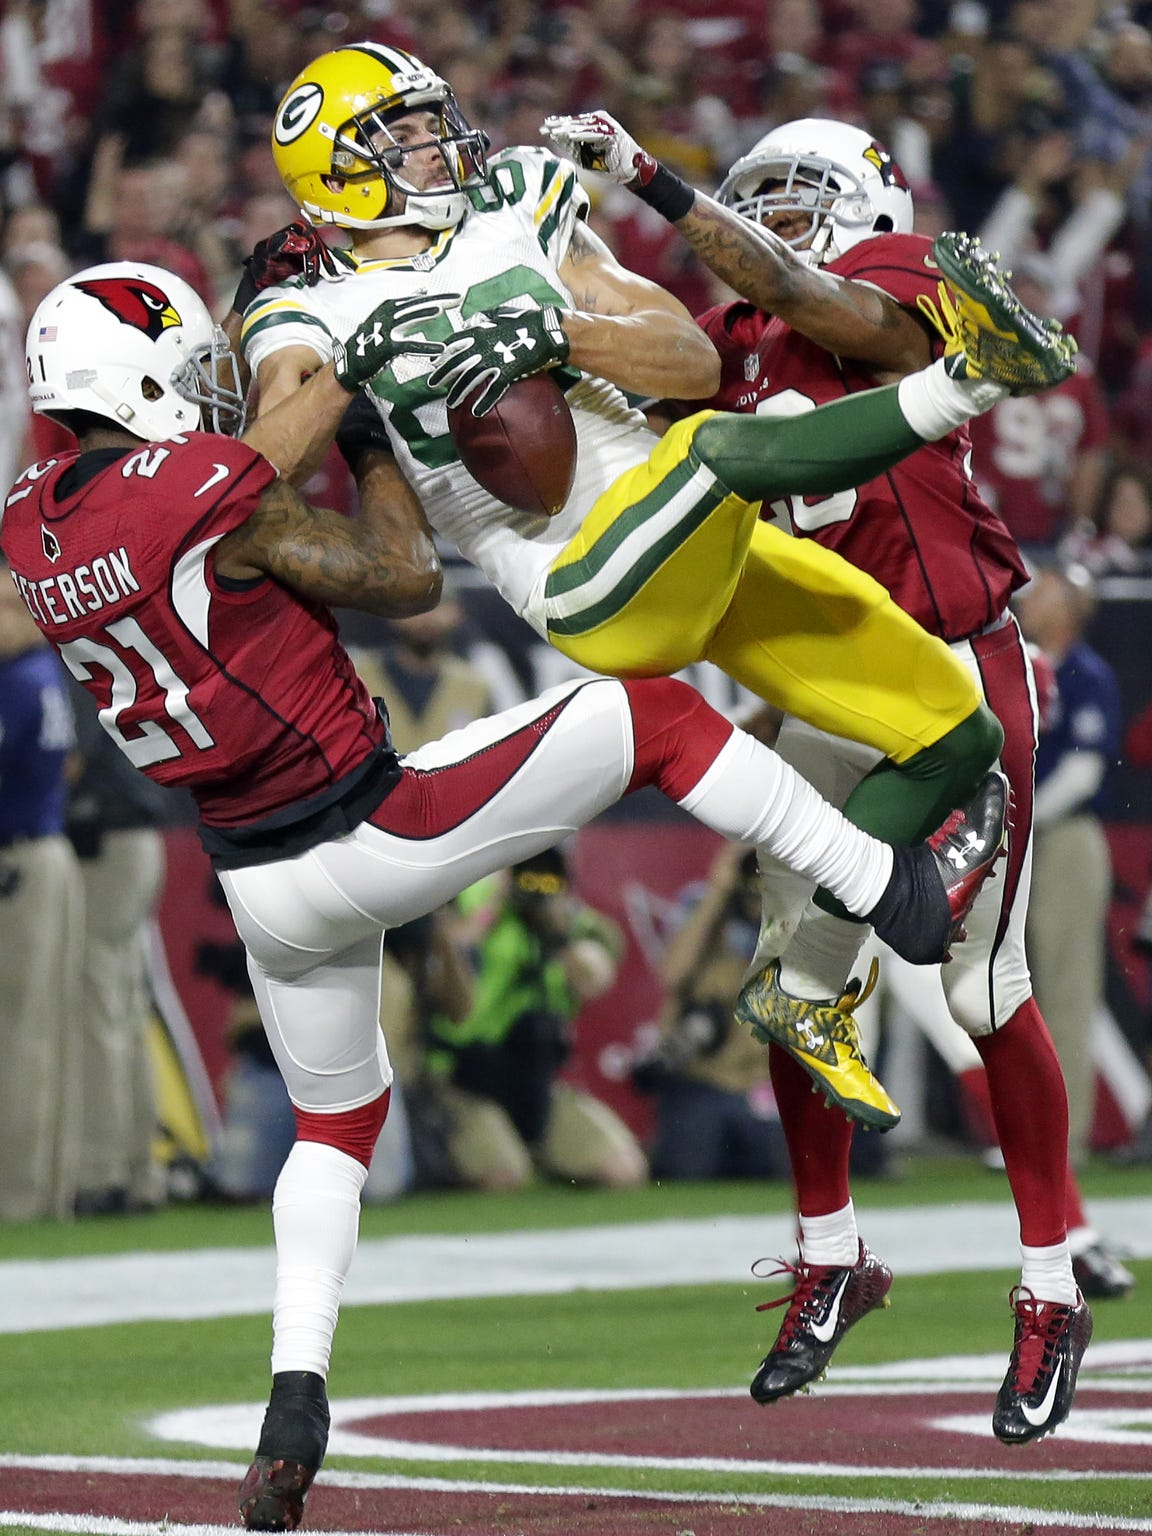 Green Bay Packers' Jeff Janis catches a touchdown pass